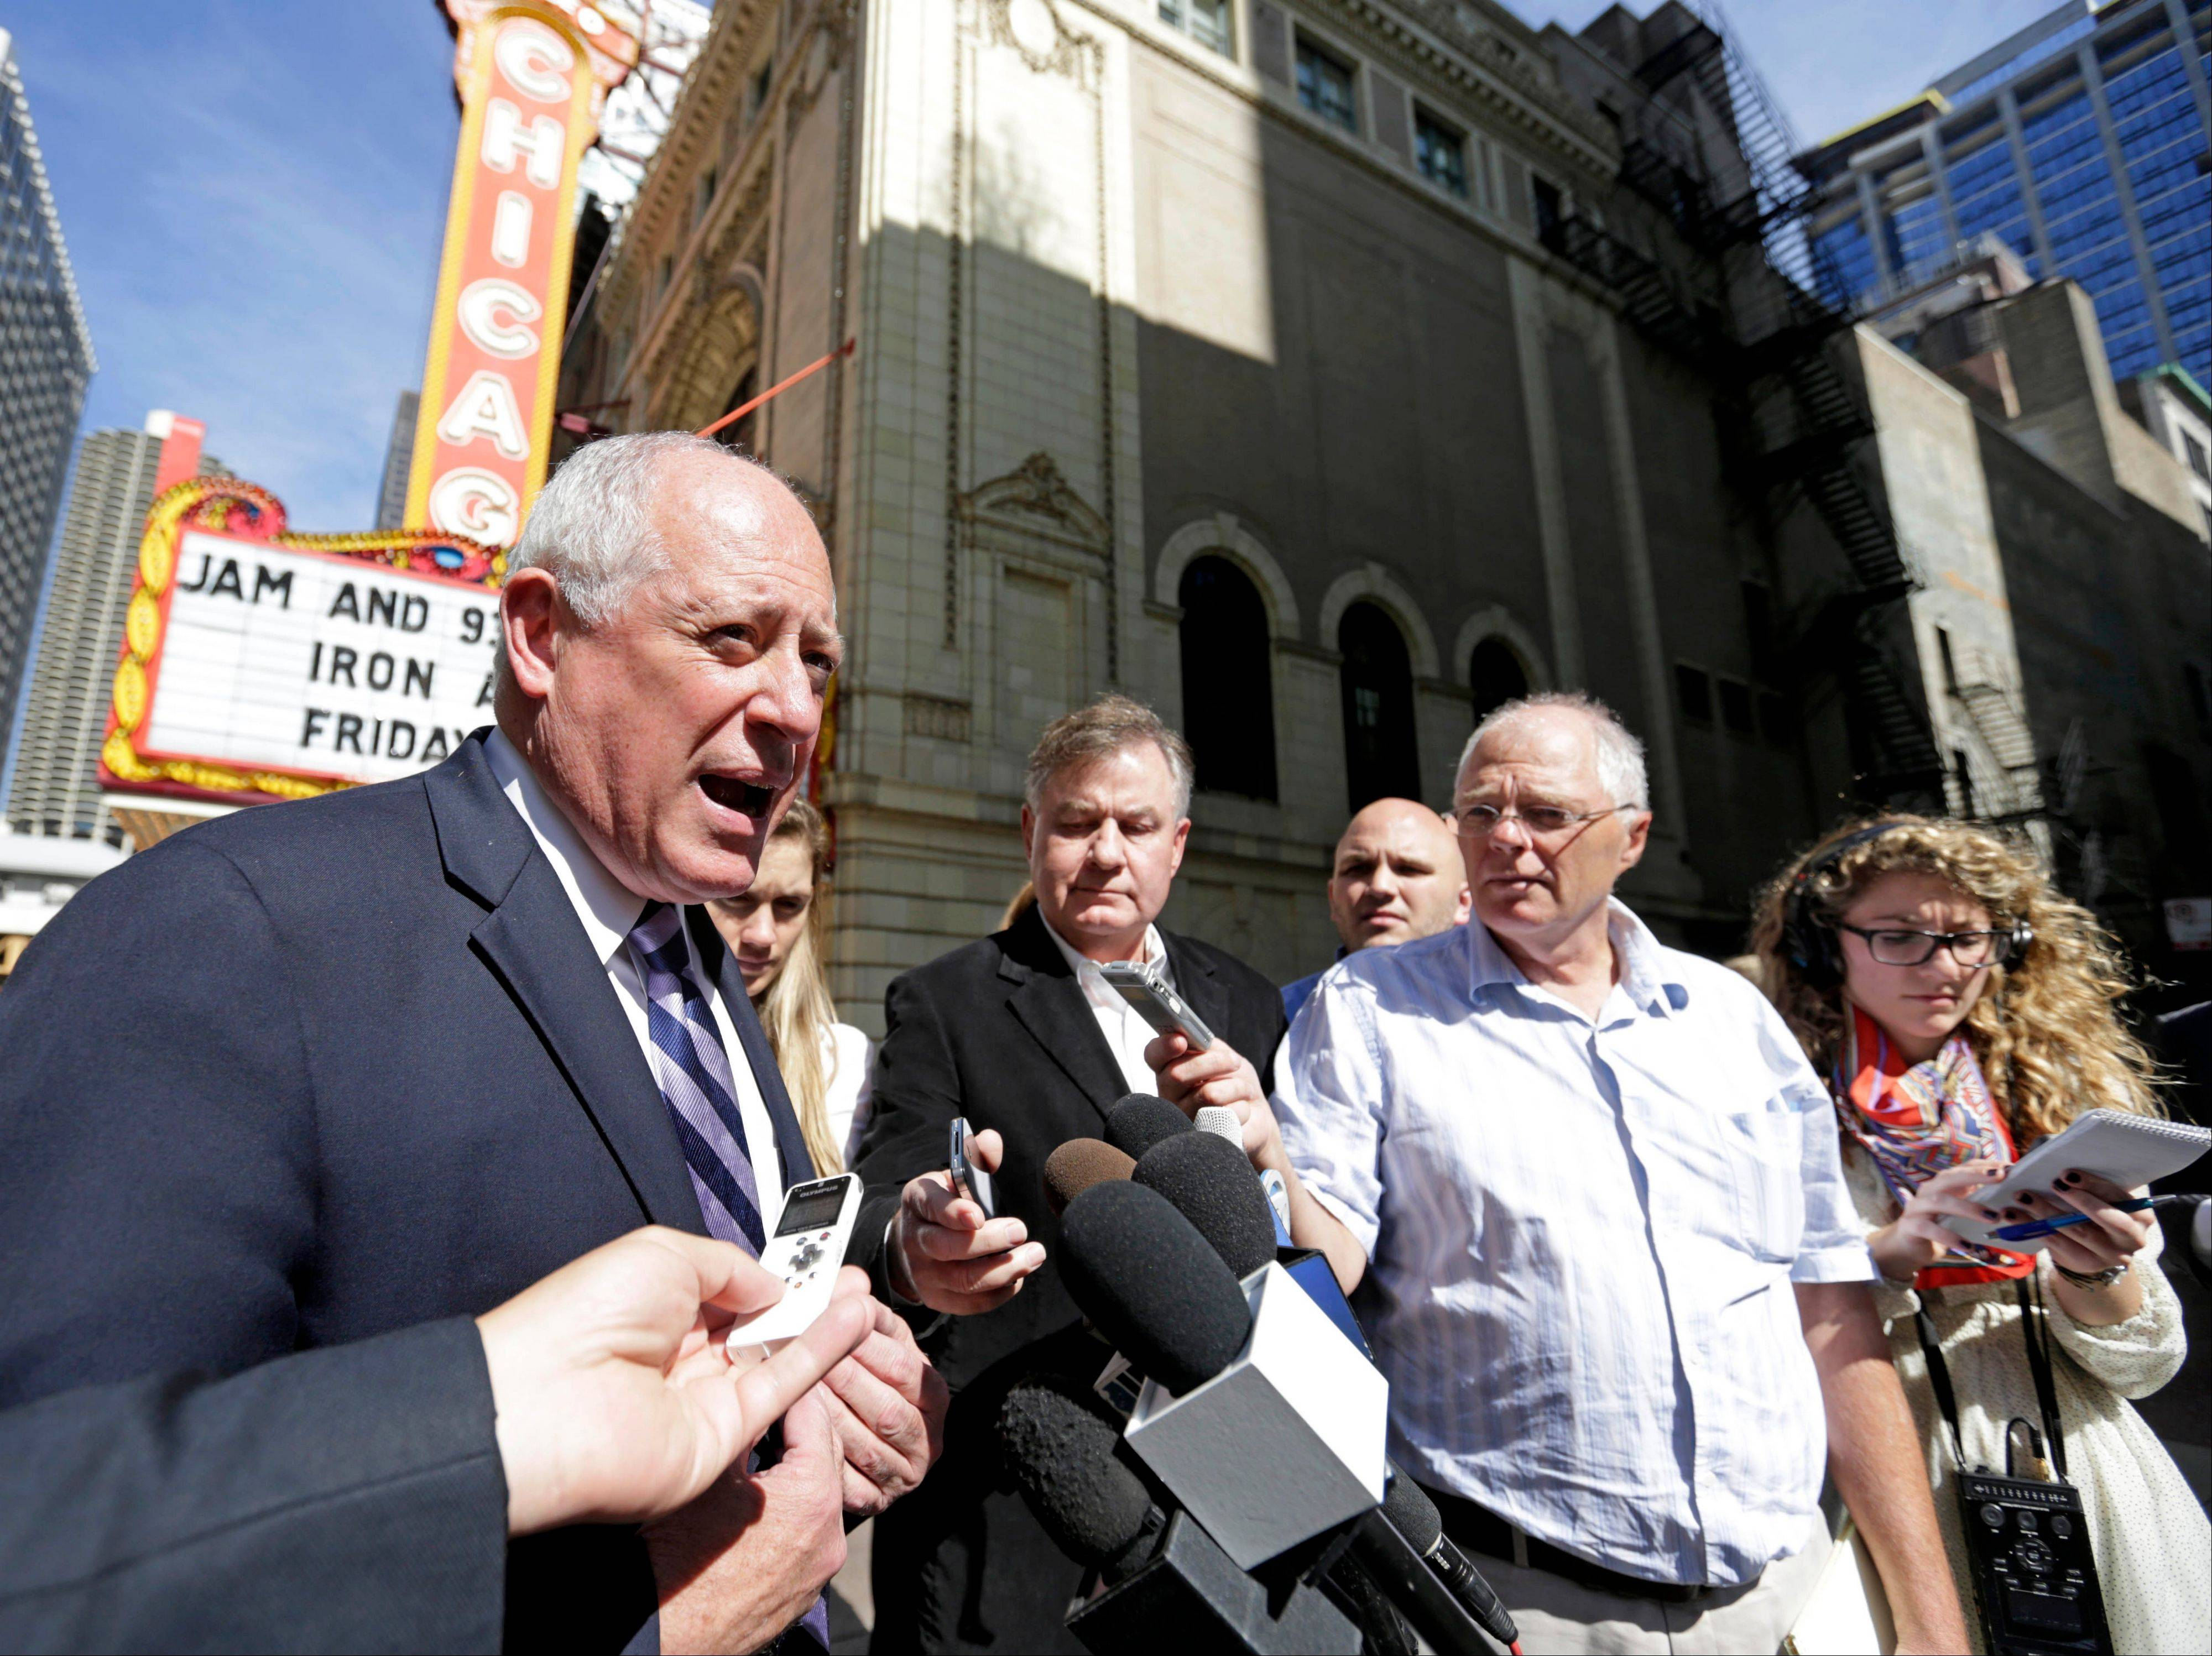 Gov. Pat Quinn speaks to reporters Fridayin Chicago after Cook County Judge Neil Cohen refused his request to stop legislators from being paid while he appeals Thursday�s court ruling that his action was unconstitutional.